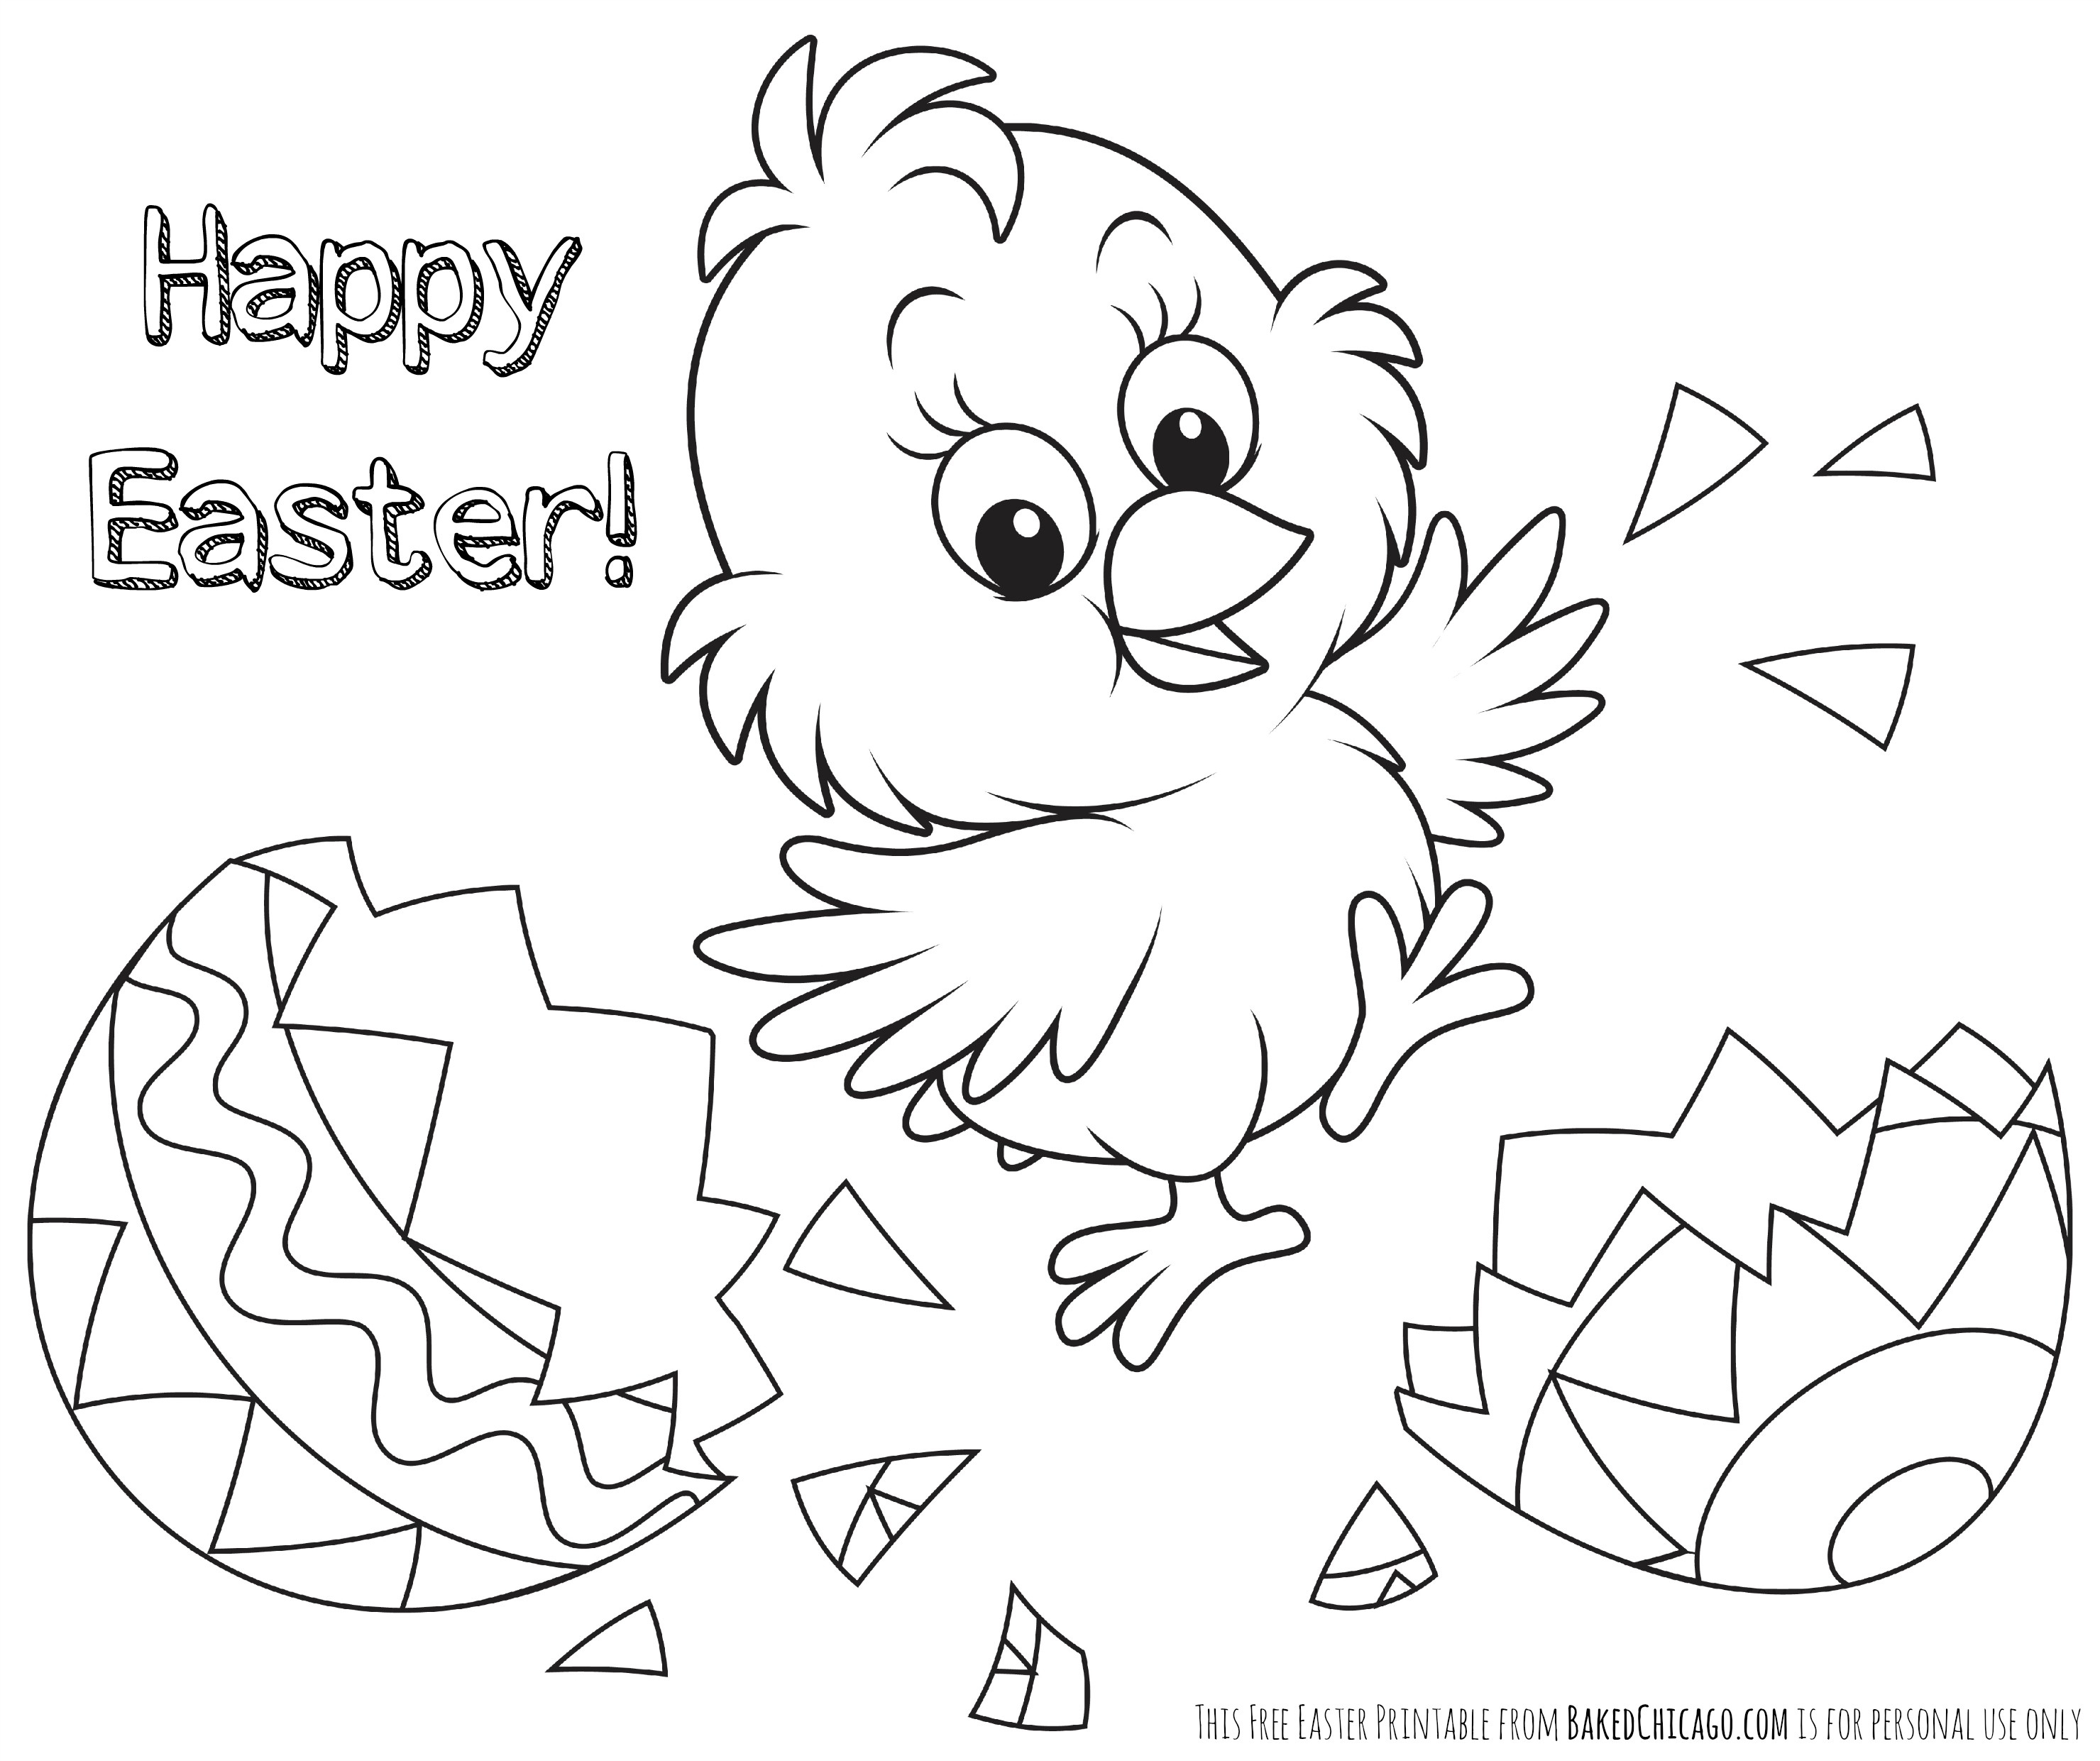 Coloring Pages : Free Easter Coloringes For Kidsfree To Print - Easter Color Pages Free Printable